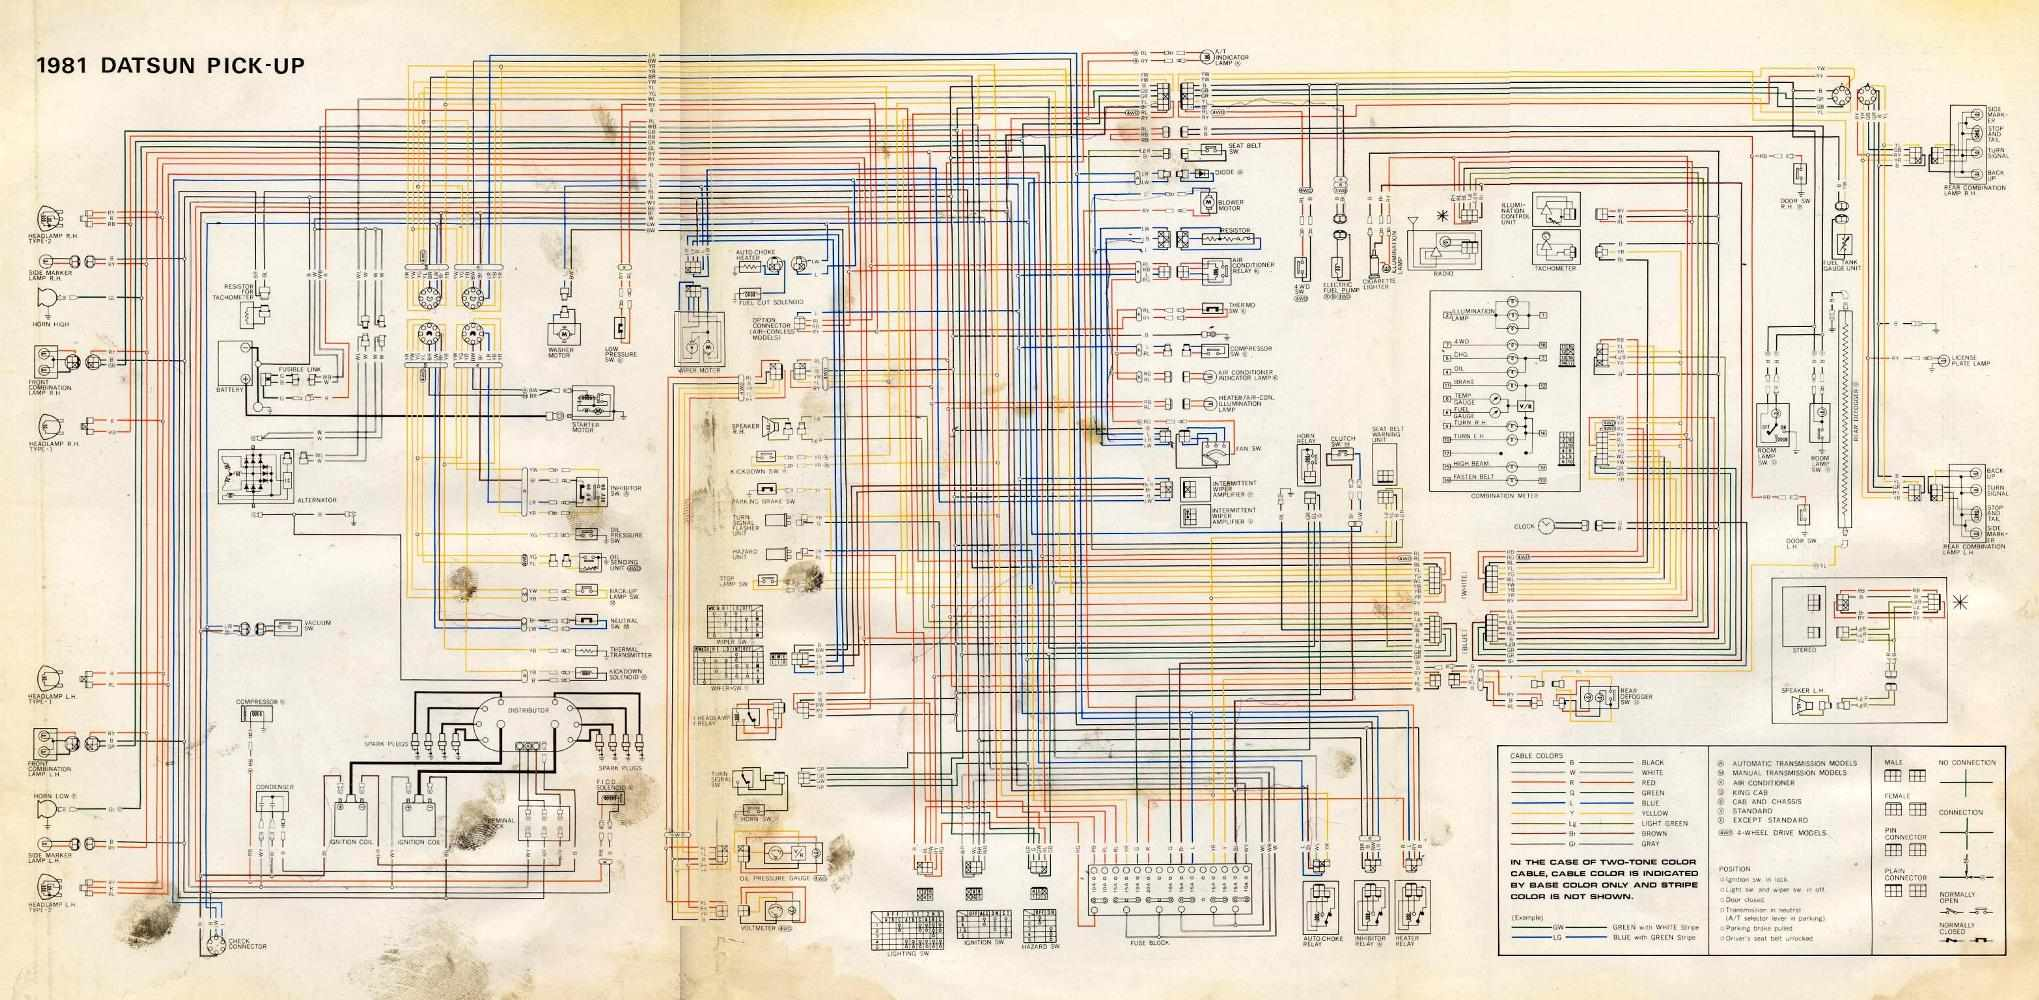 Nissan Ka24e Engine Diagram Recomended Car Wiring Harness Page 3 And Schematics